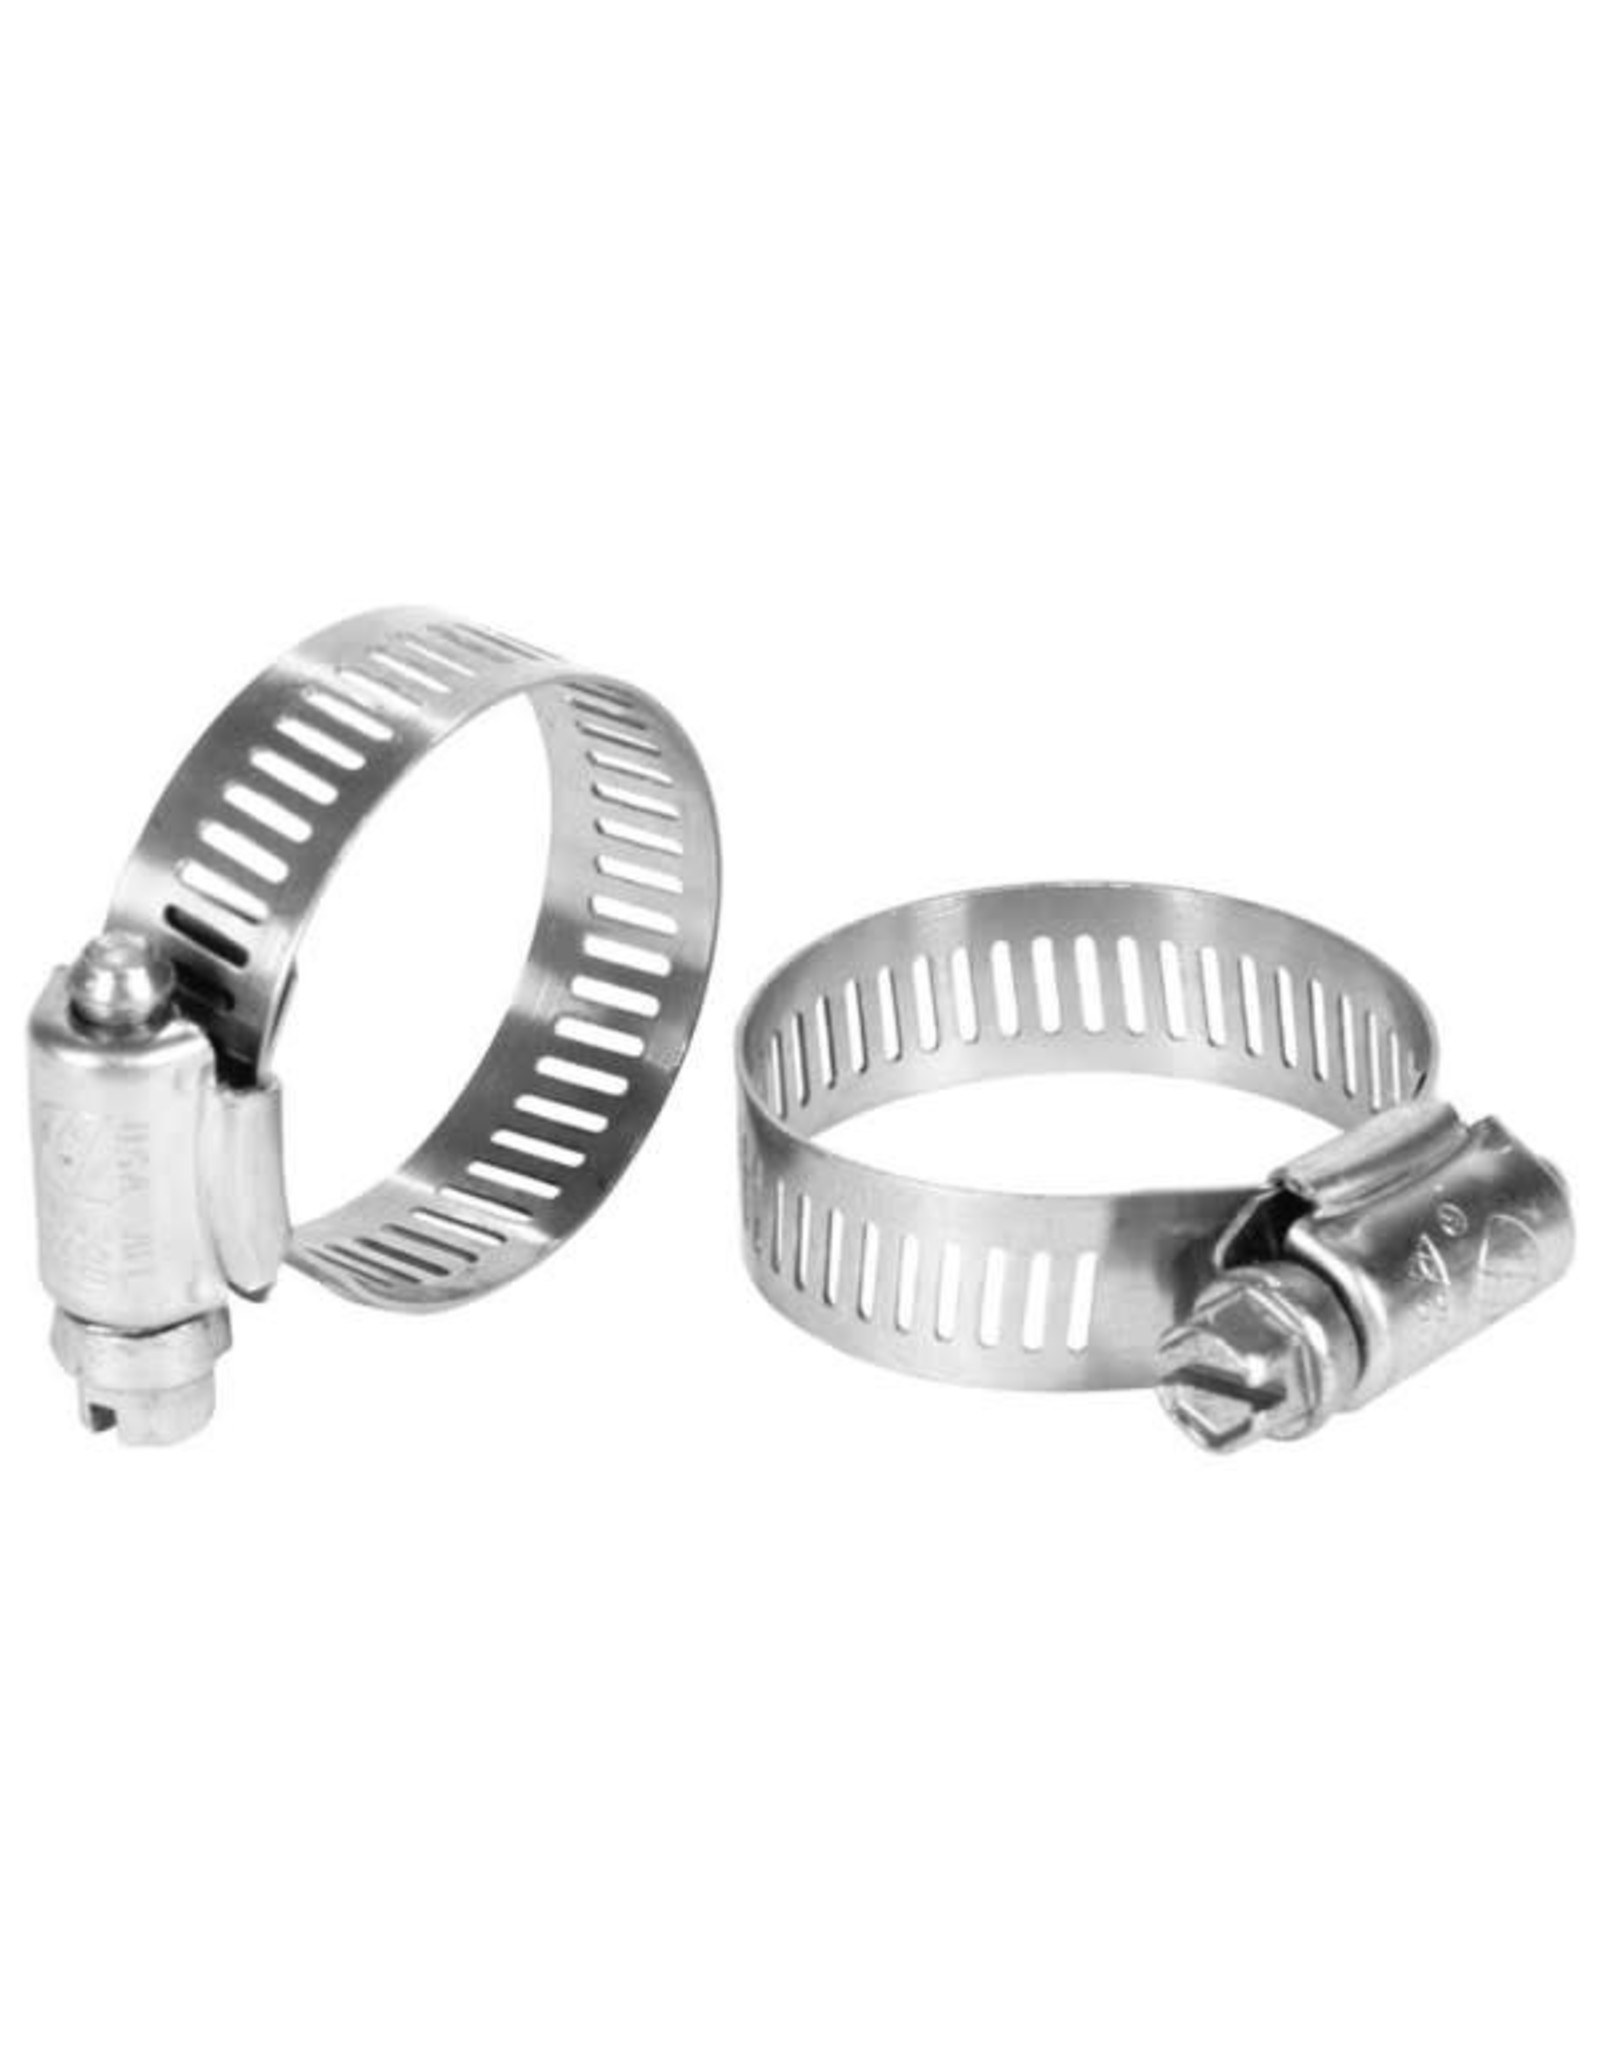 #6 S/S WORM CLAMP 2 PACK